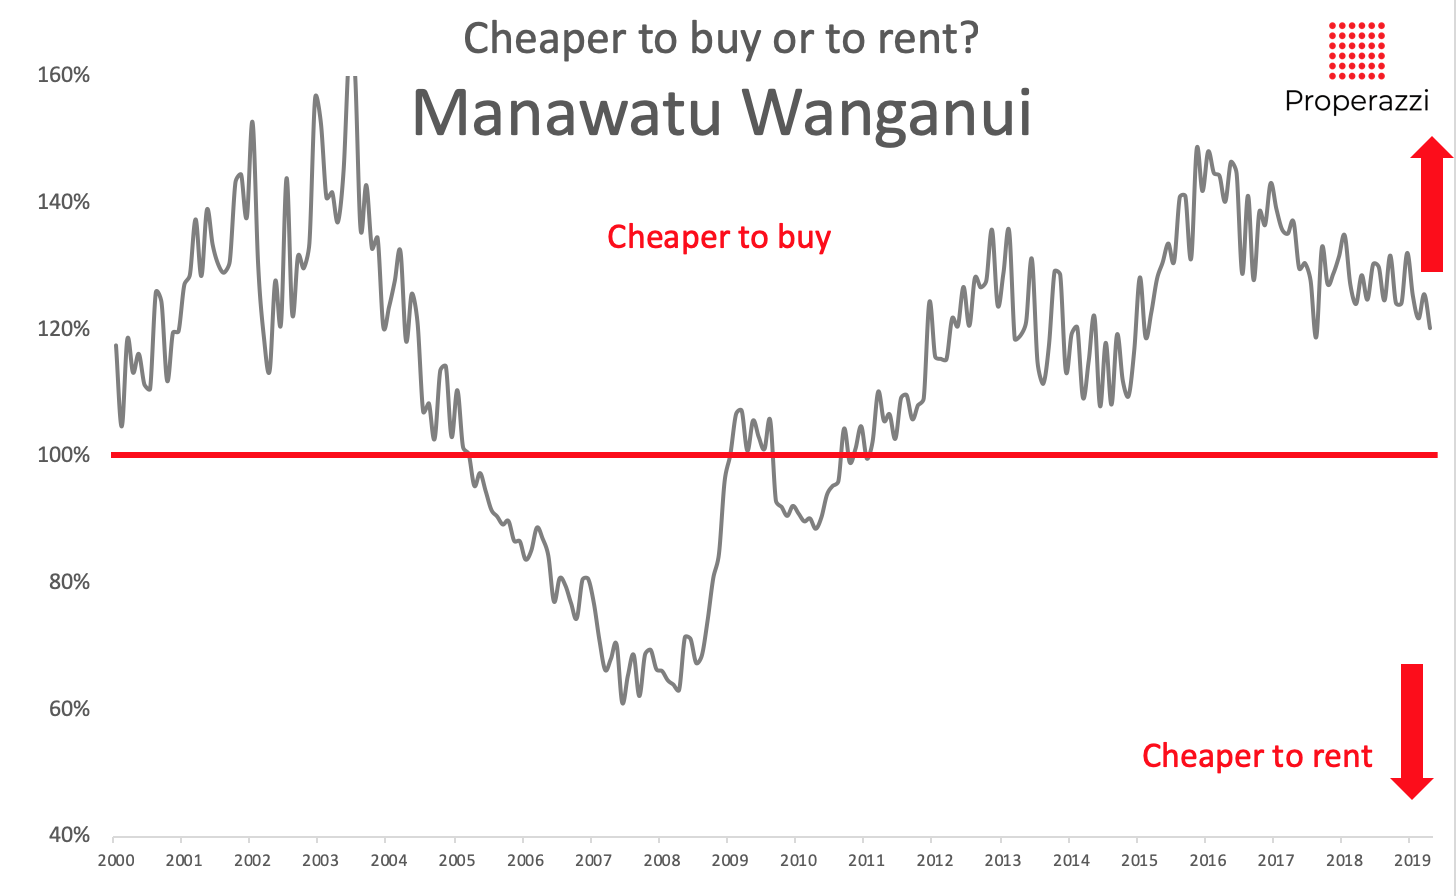 To rent or to buy in the Manawatu Wanganui region May 2019